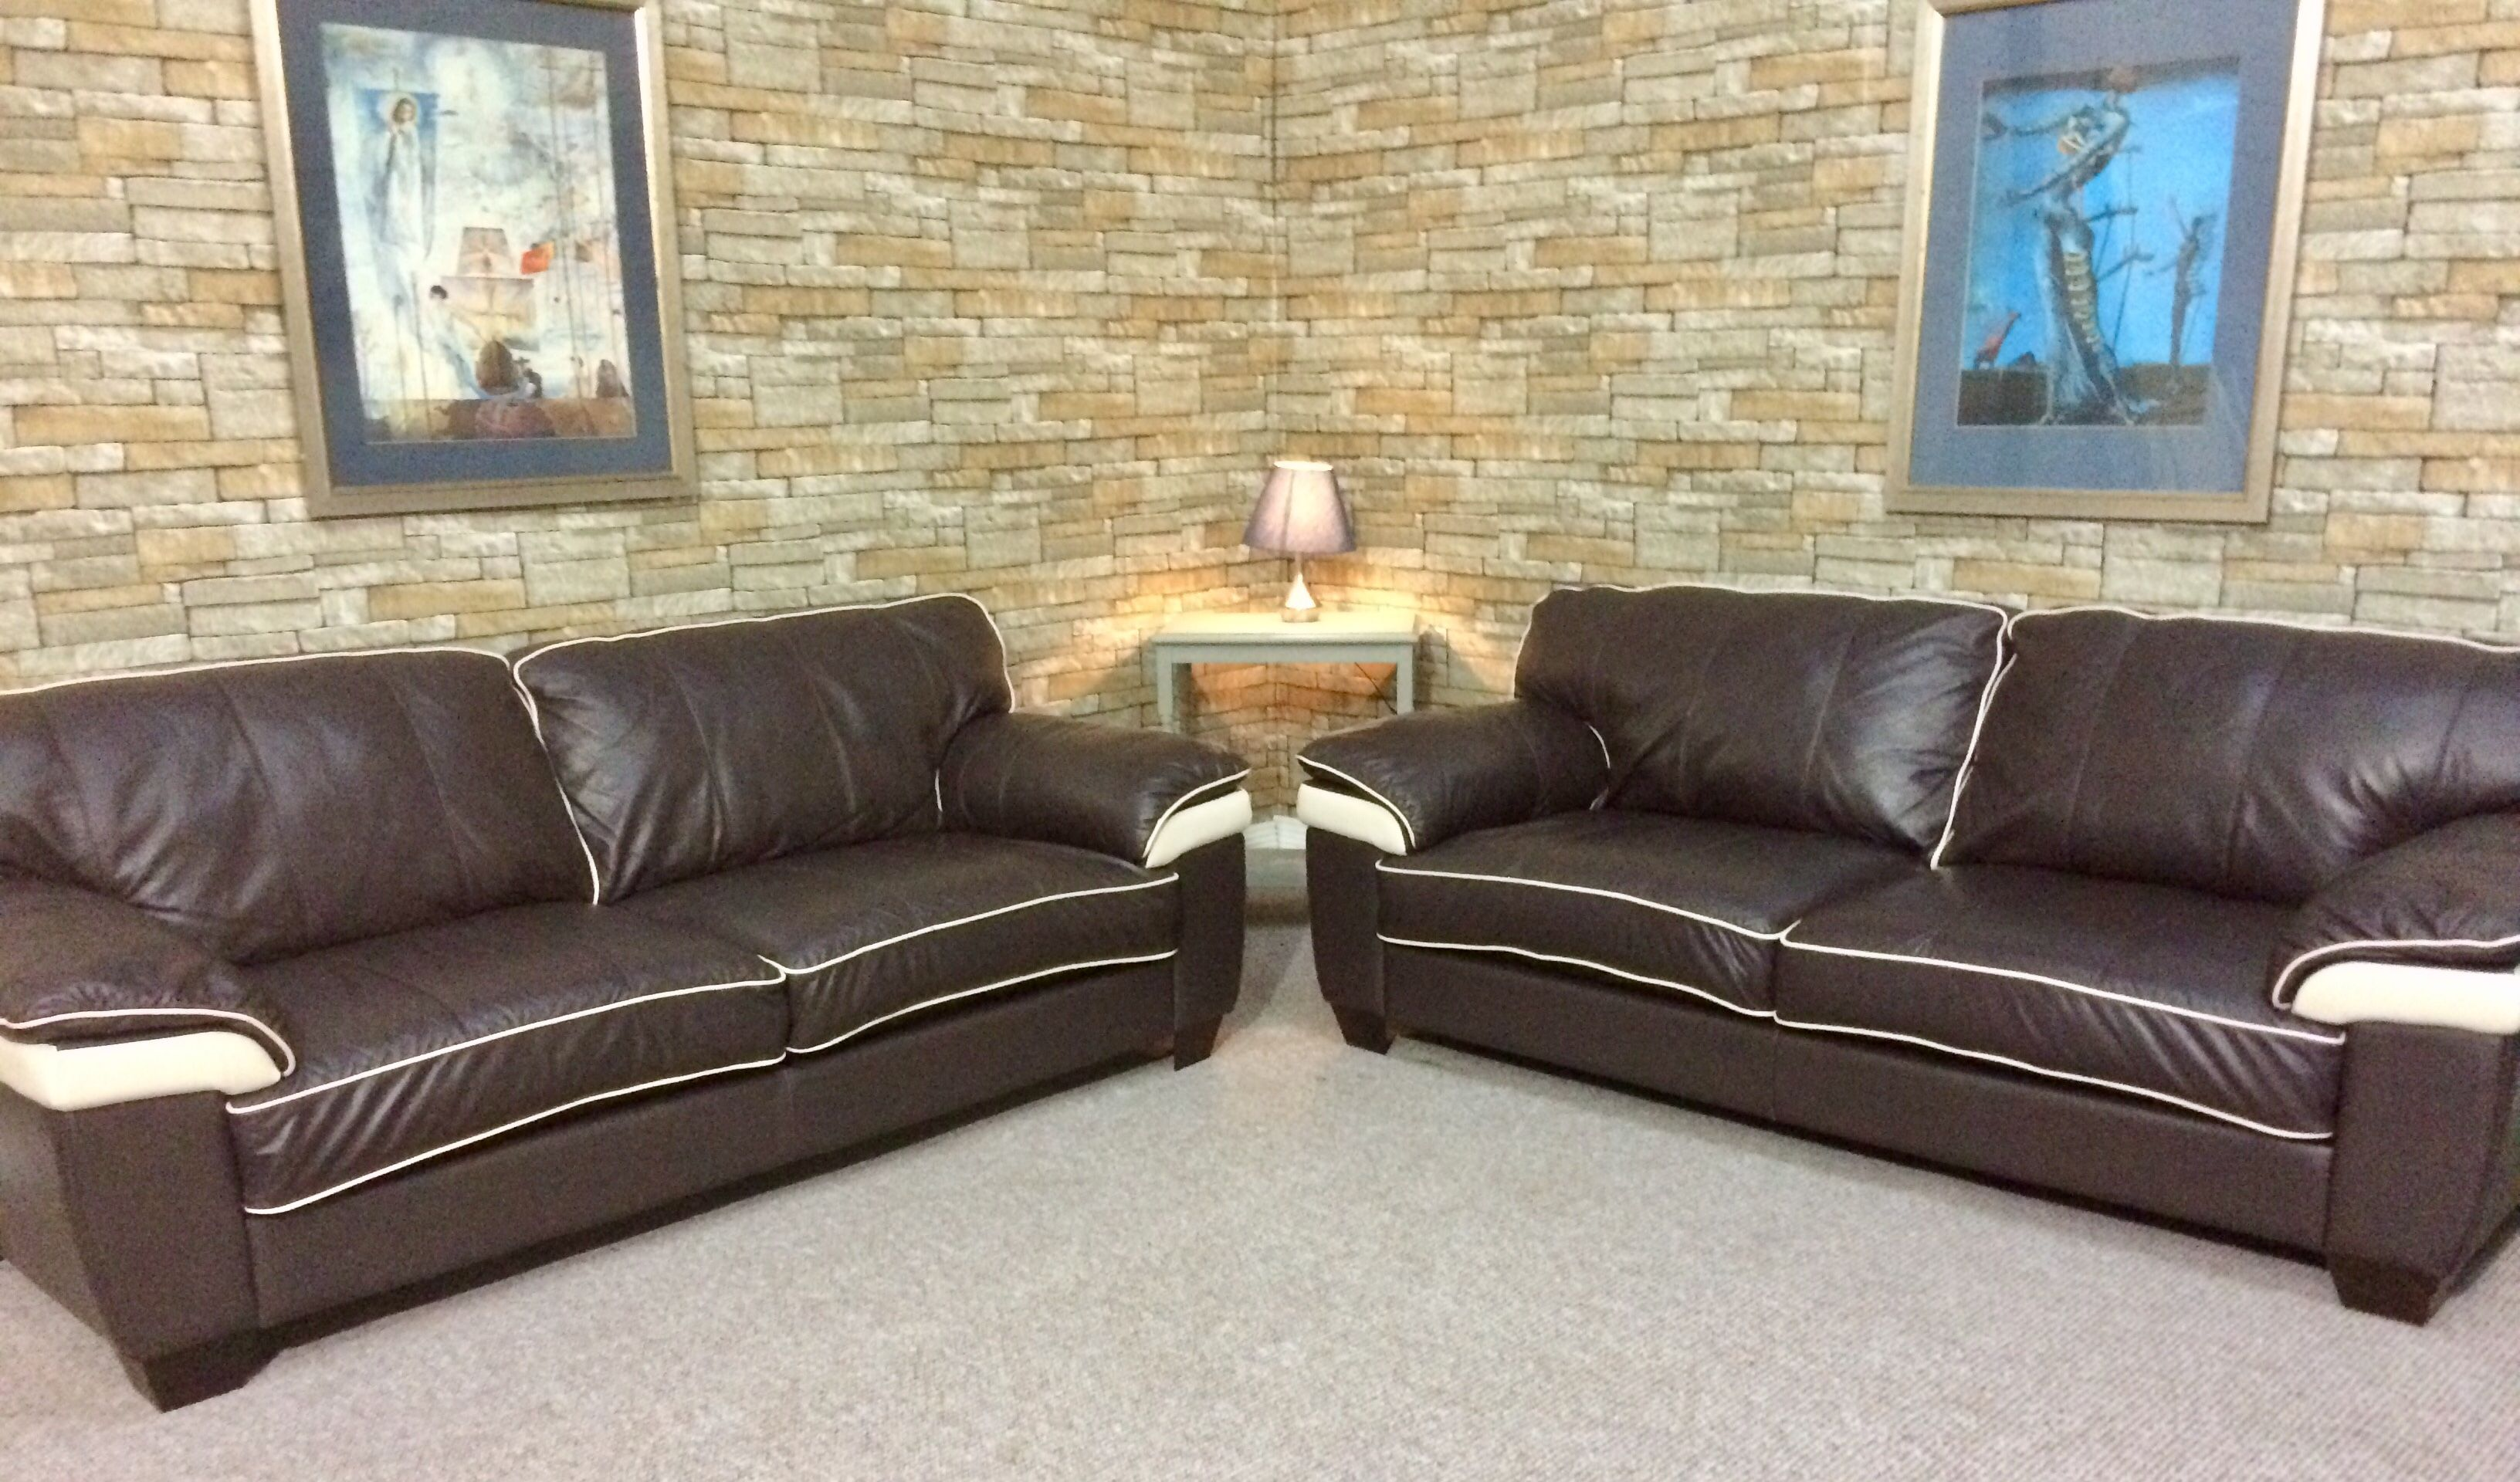 Price Only 450 Description For Beautiful Fully Refurbished Brown Leather Suite With White Trim Comfortable And Stylish Will Add A Touch Of